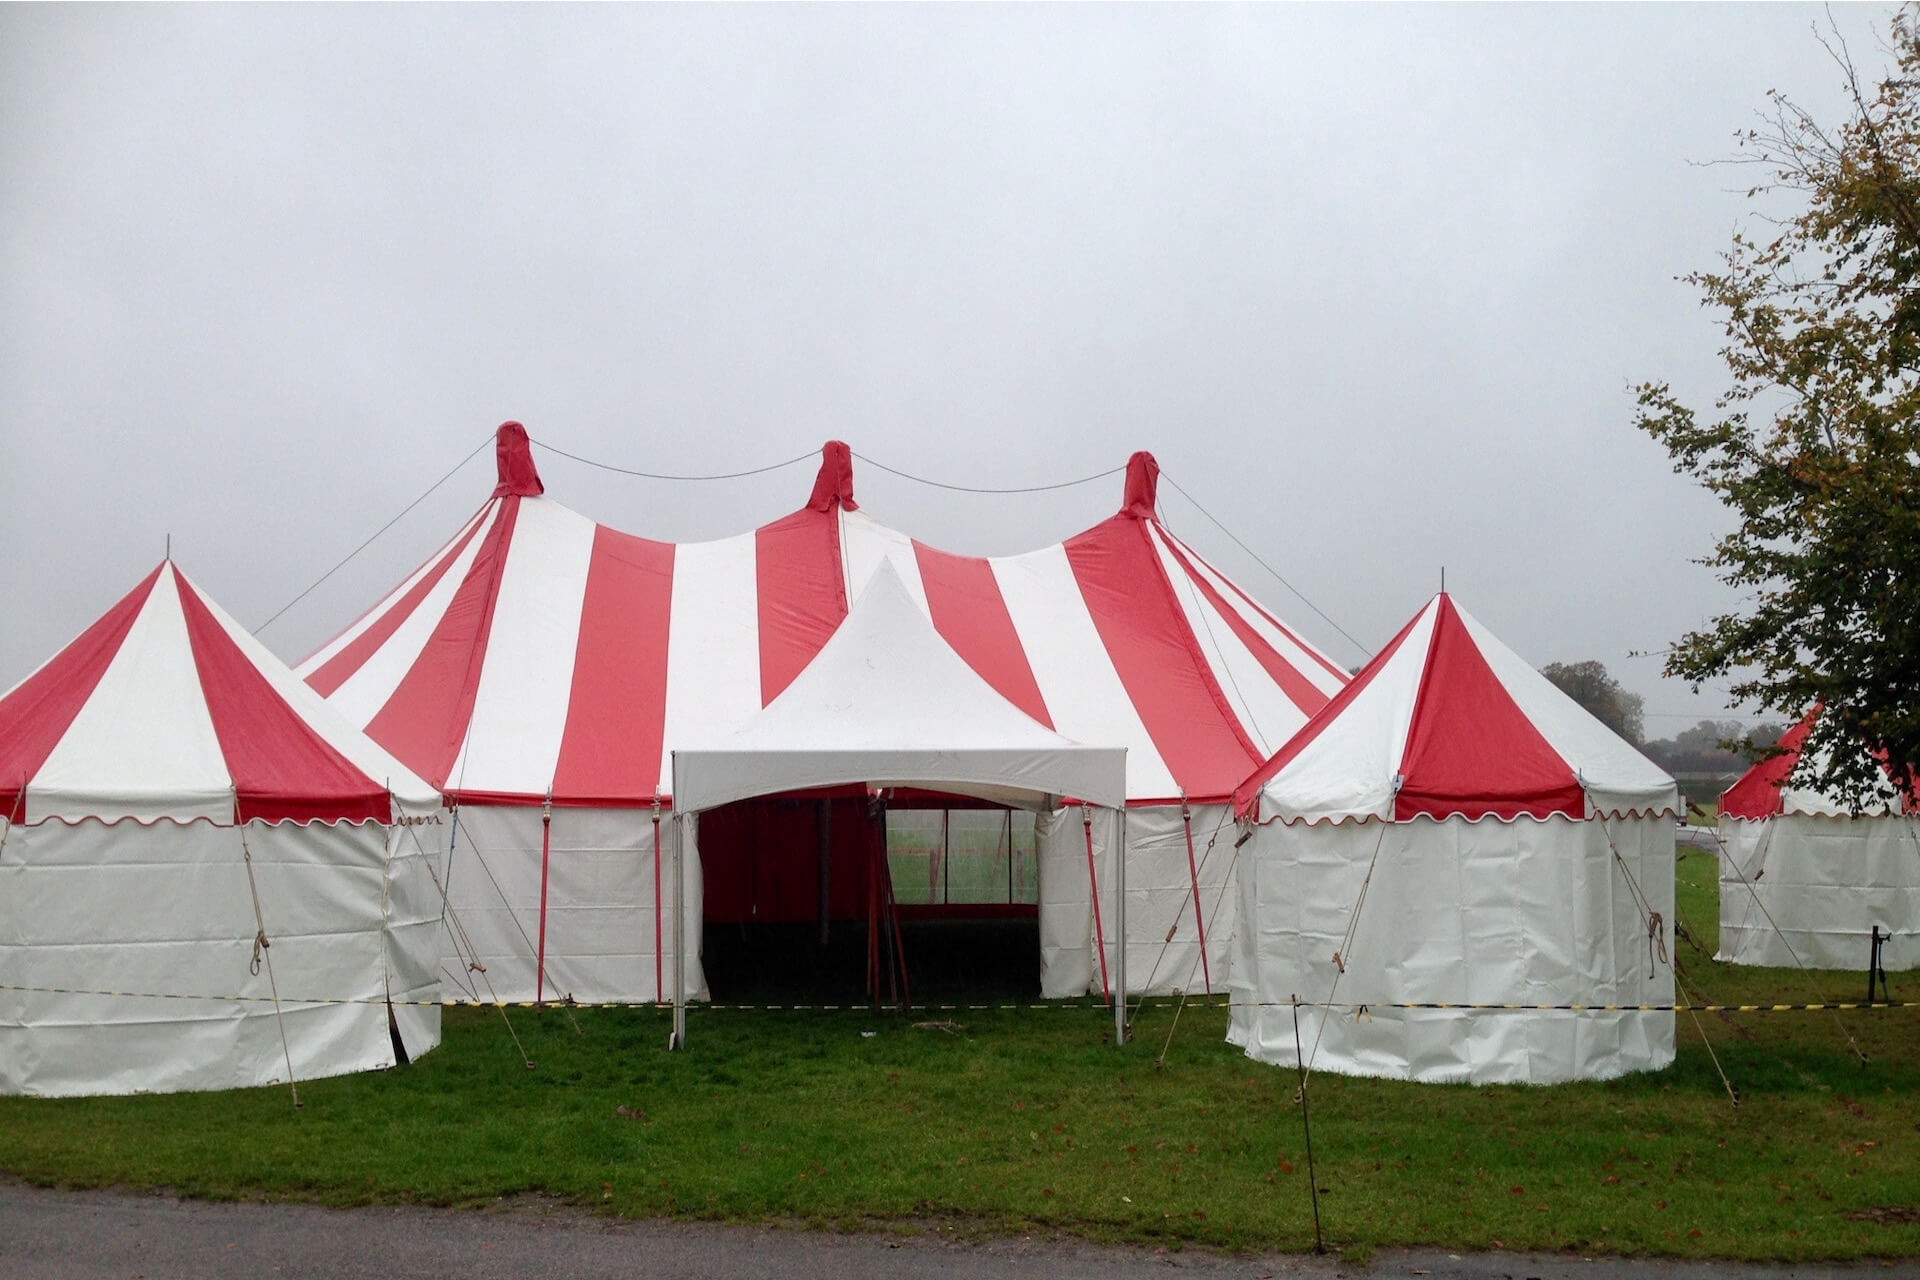 Lots of red & white marquees for hire and rent